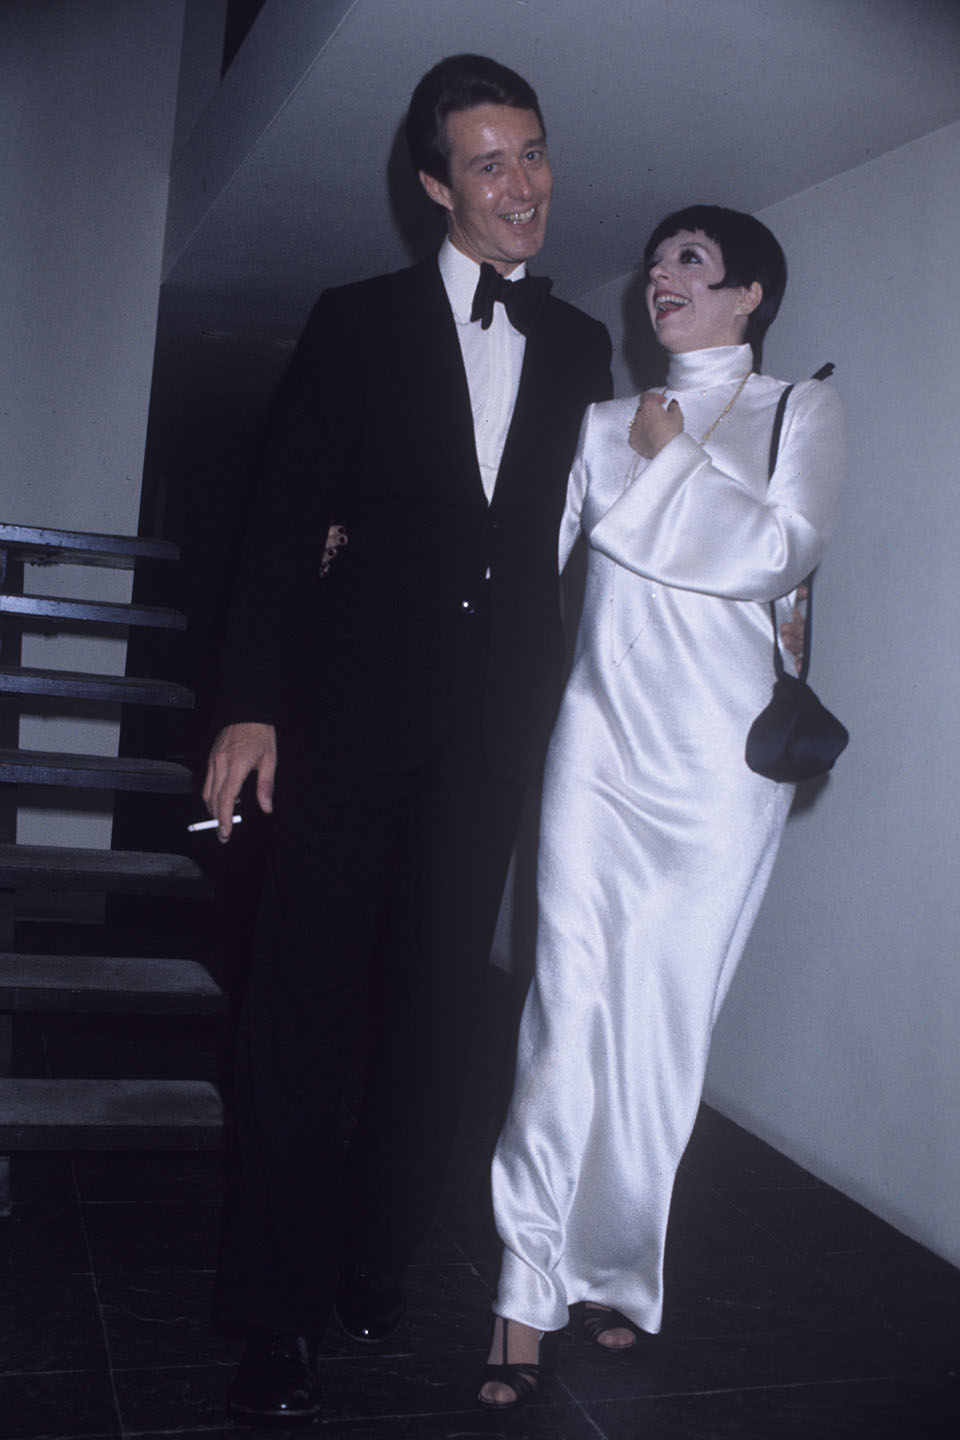 Liza Minnelli celebrates her first wedding anniversary with Roy Halston during a party at Halston's New York home on September 15, 1975.